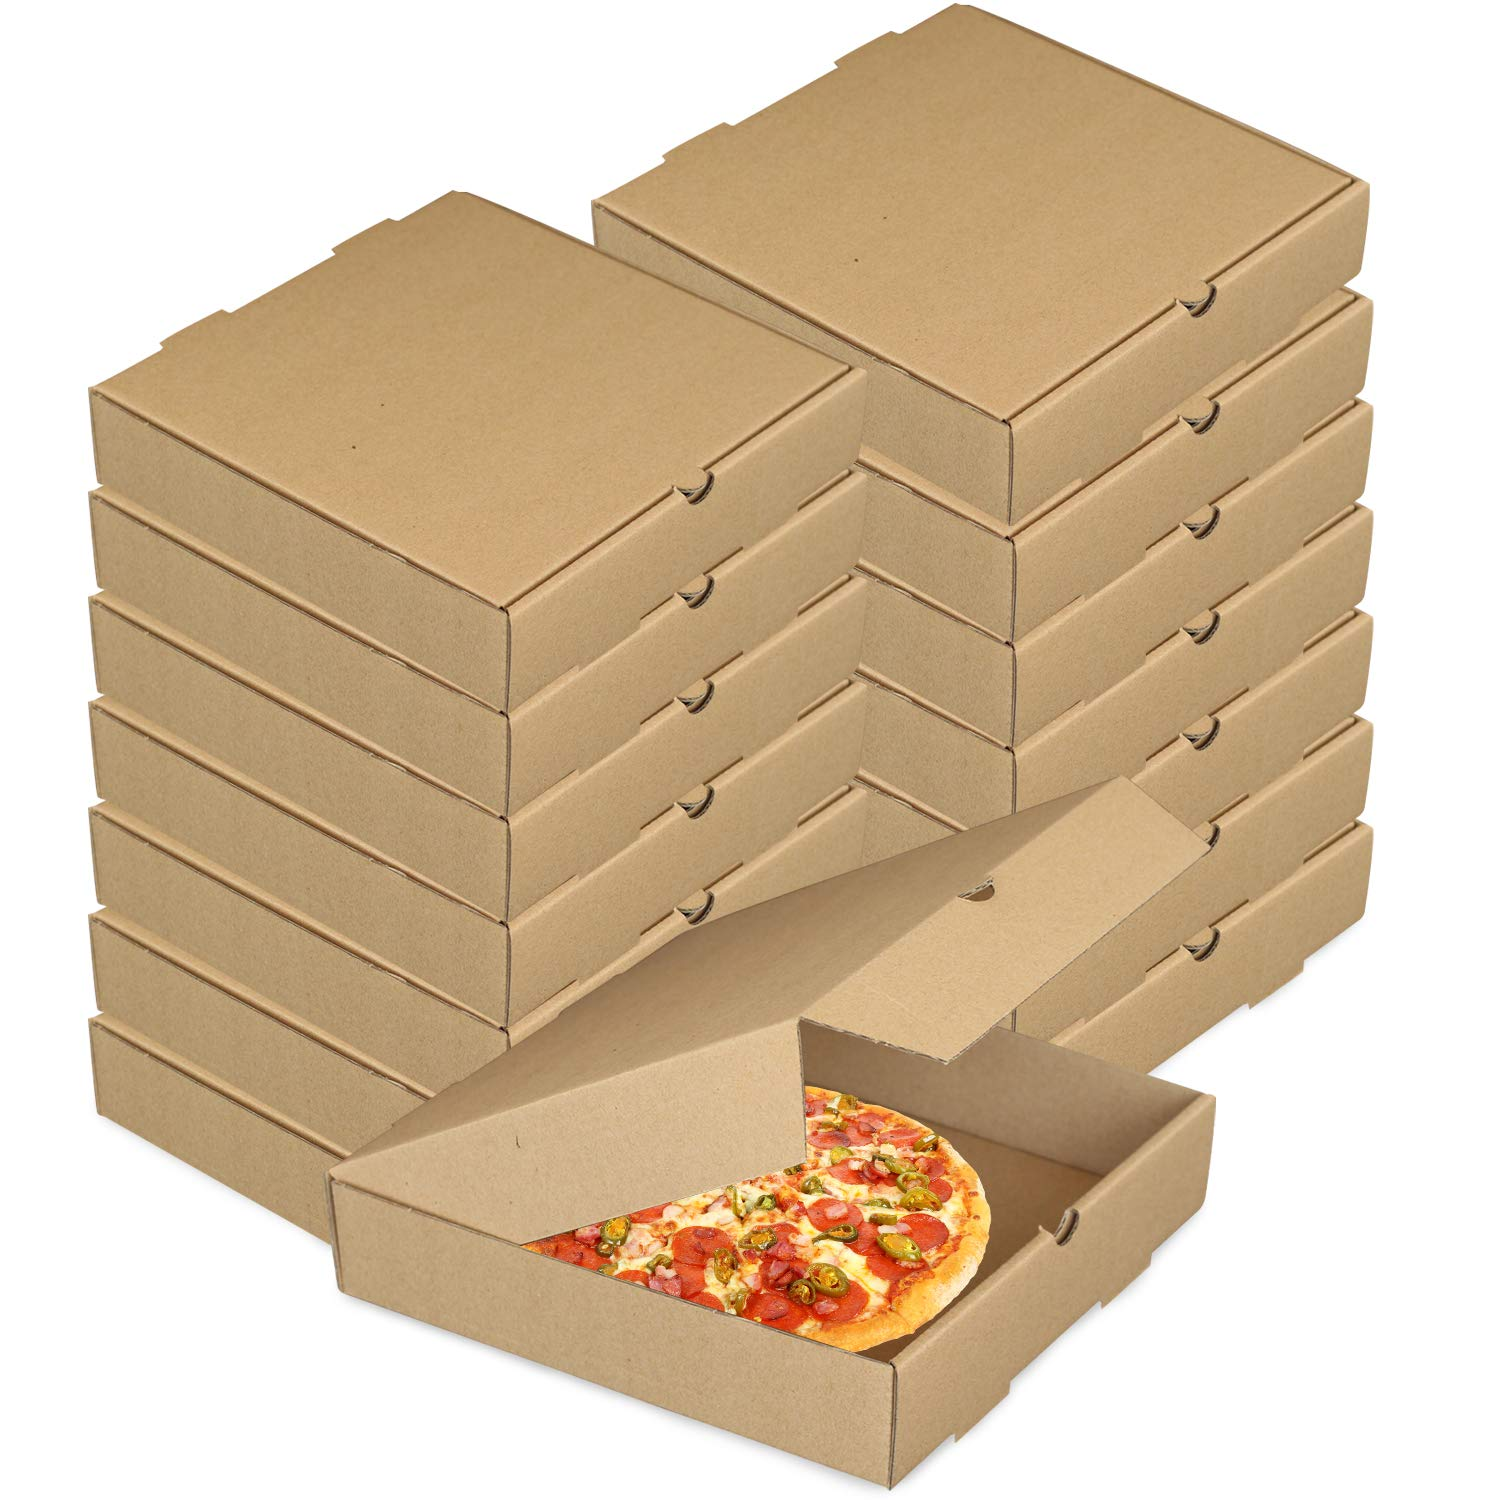 15 Pcs Pizza Boxes, Lainrrew 8 Inch Kraft Corrugated Pizza Boxes Takeaway Cardboard Boxes Take Out Food Containers Packing Boxes for Pizza, Cake, Cookies, Food